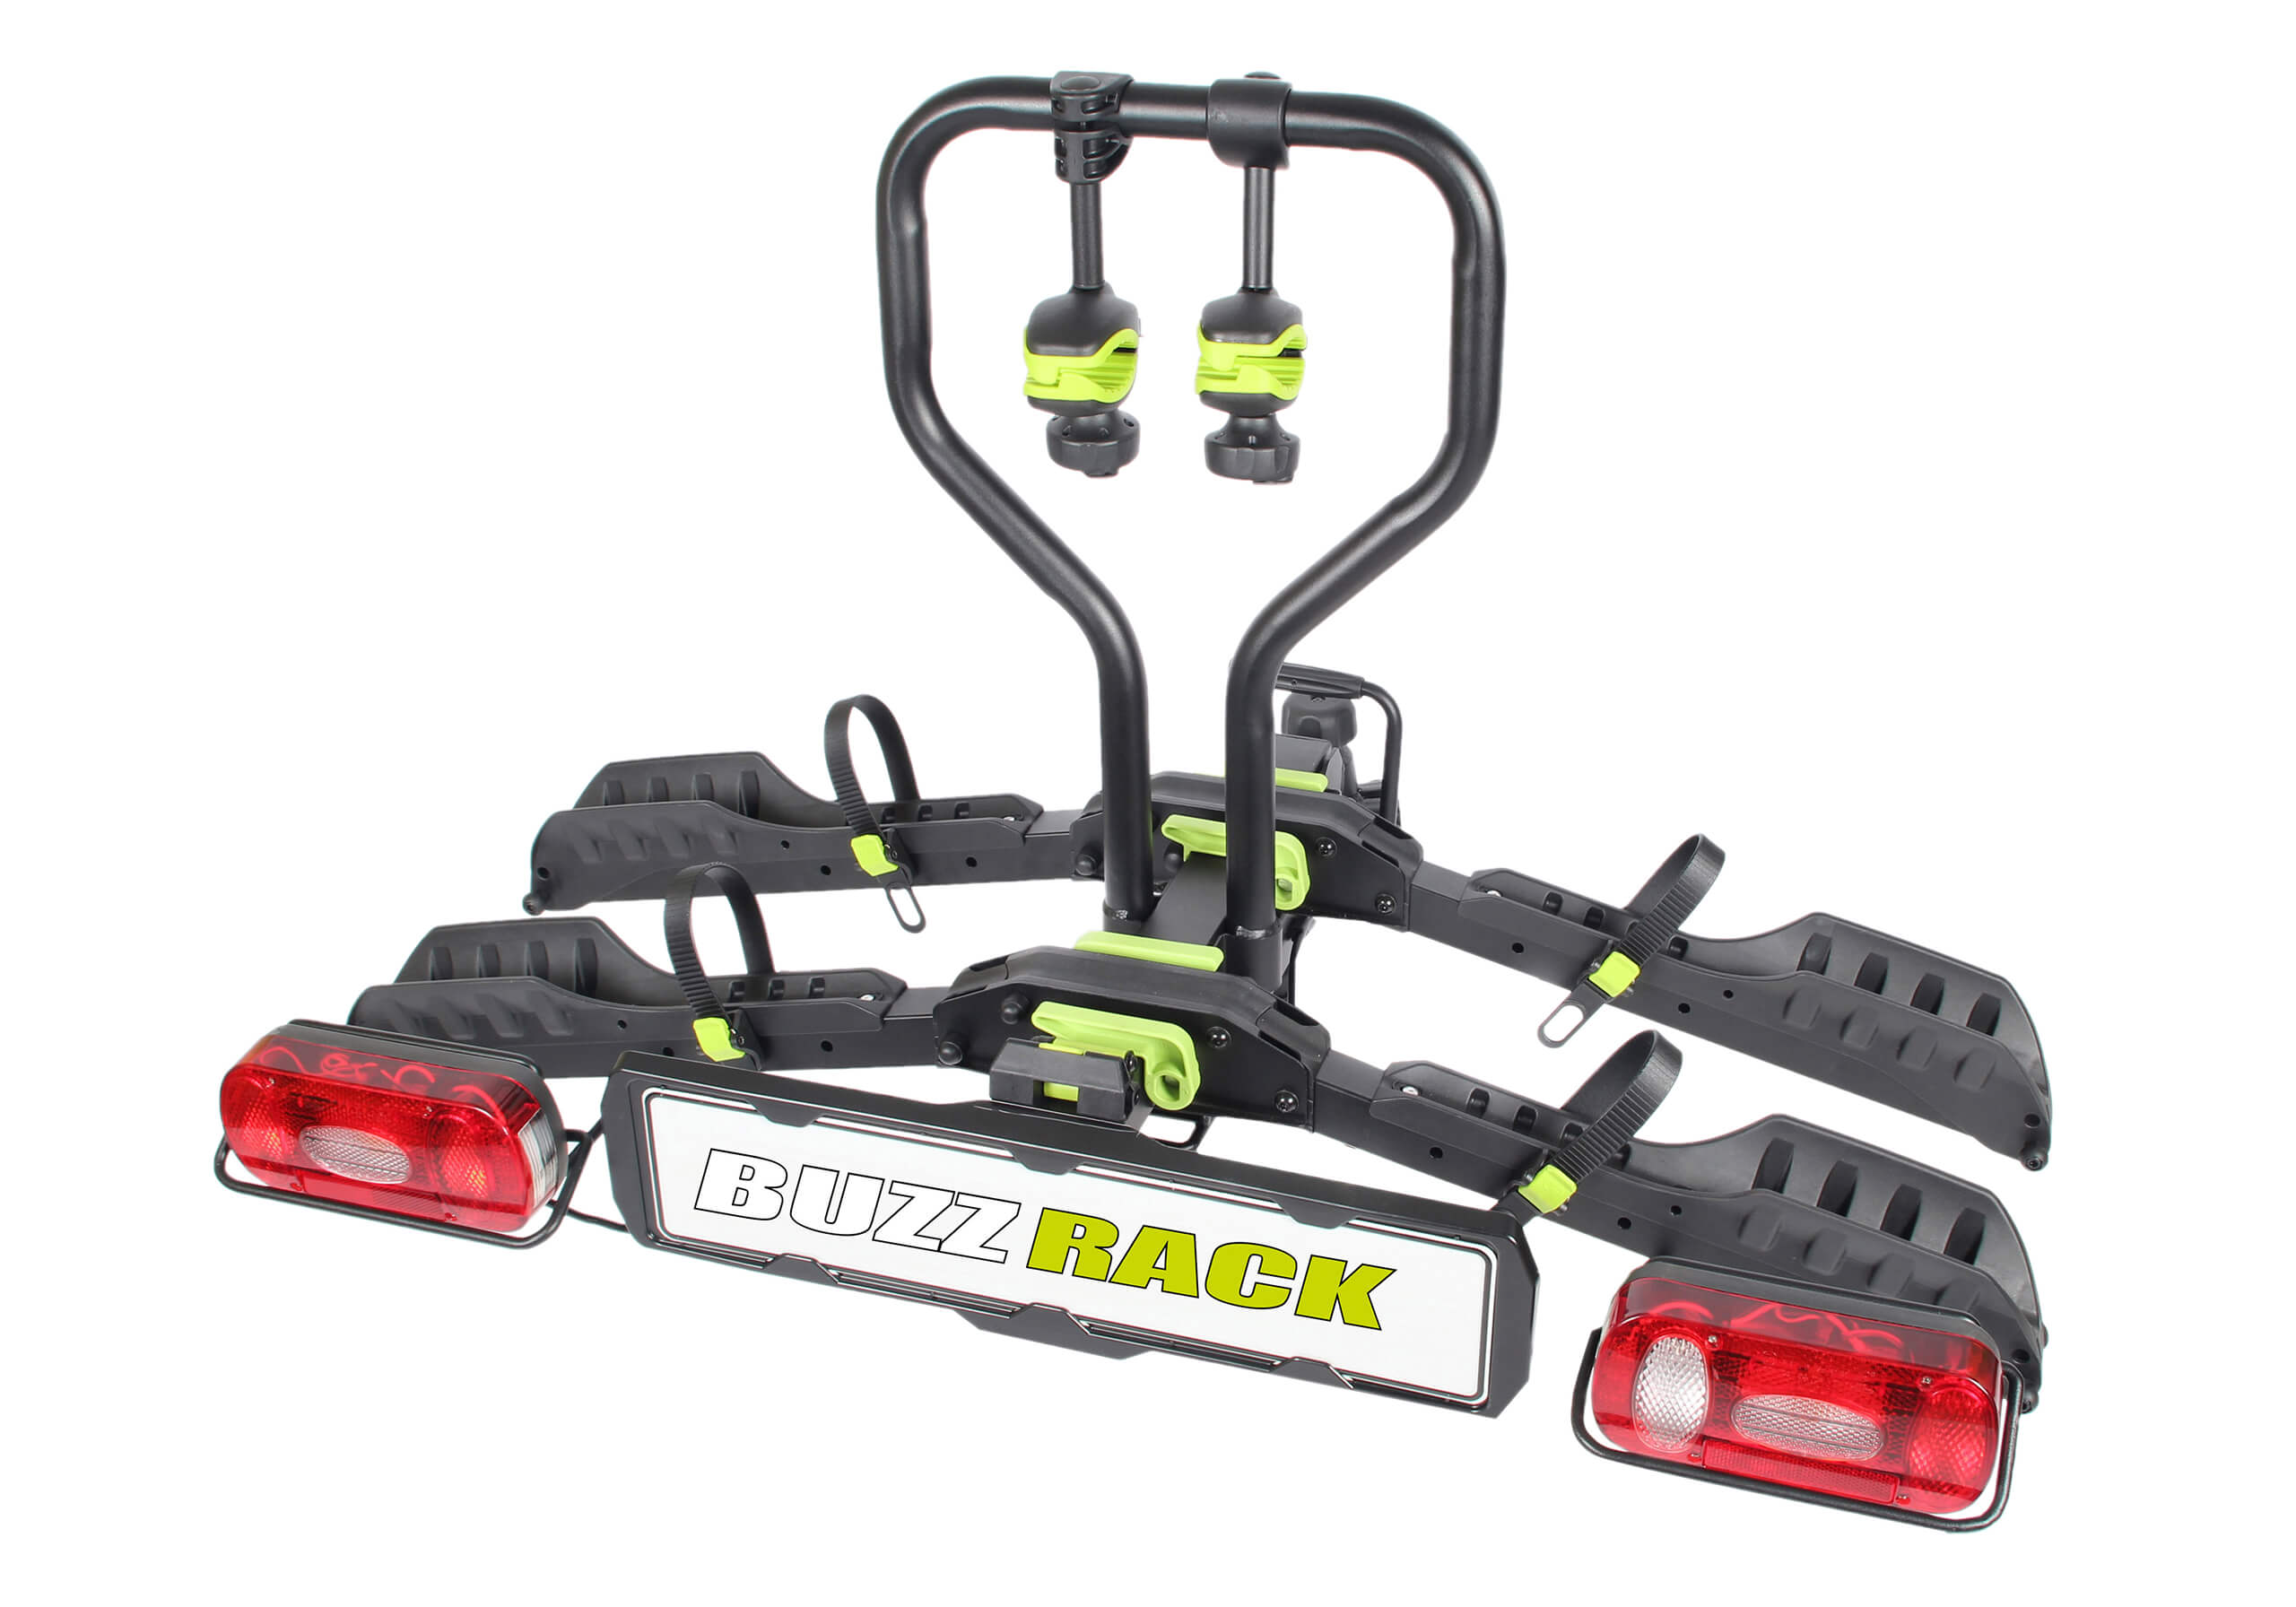 buzz rack:BUZZ RACK Scorpion 2 bike folding wheel support rack BRP602